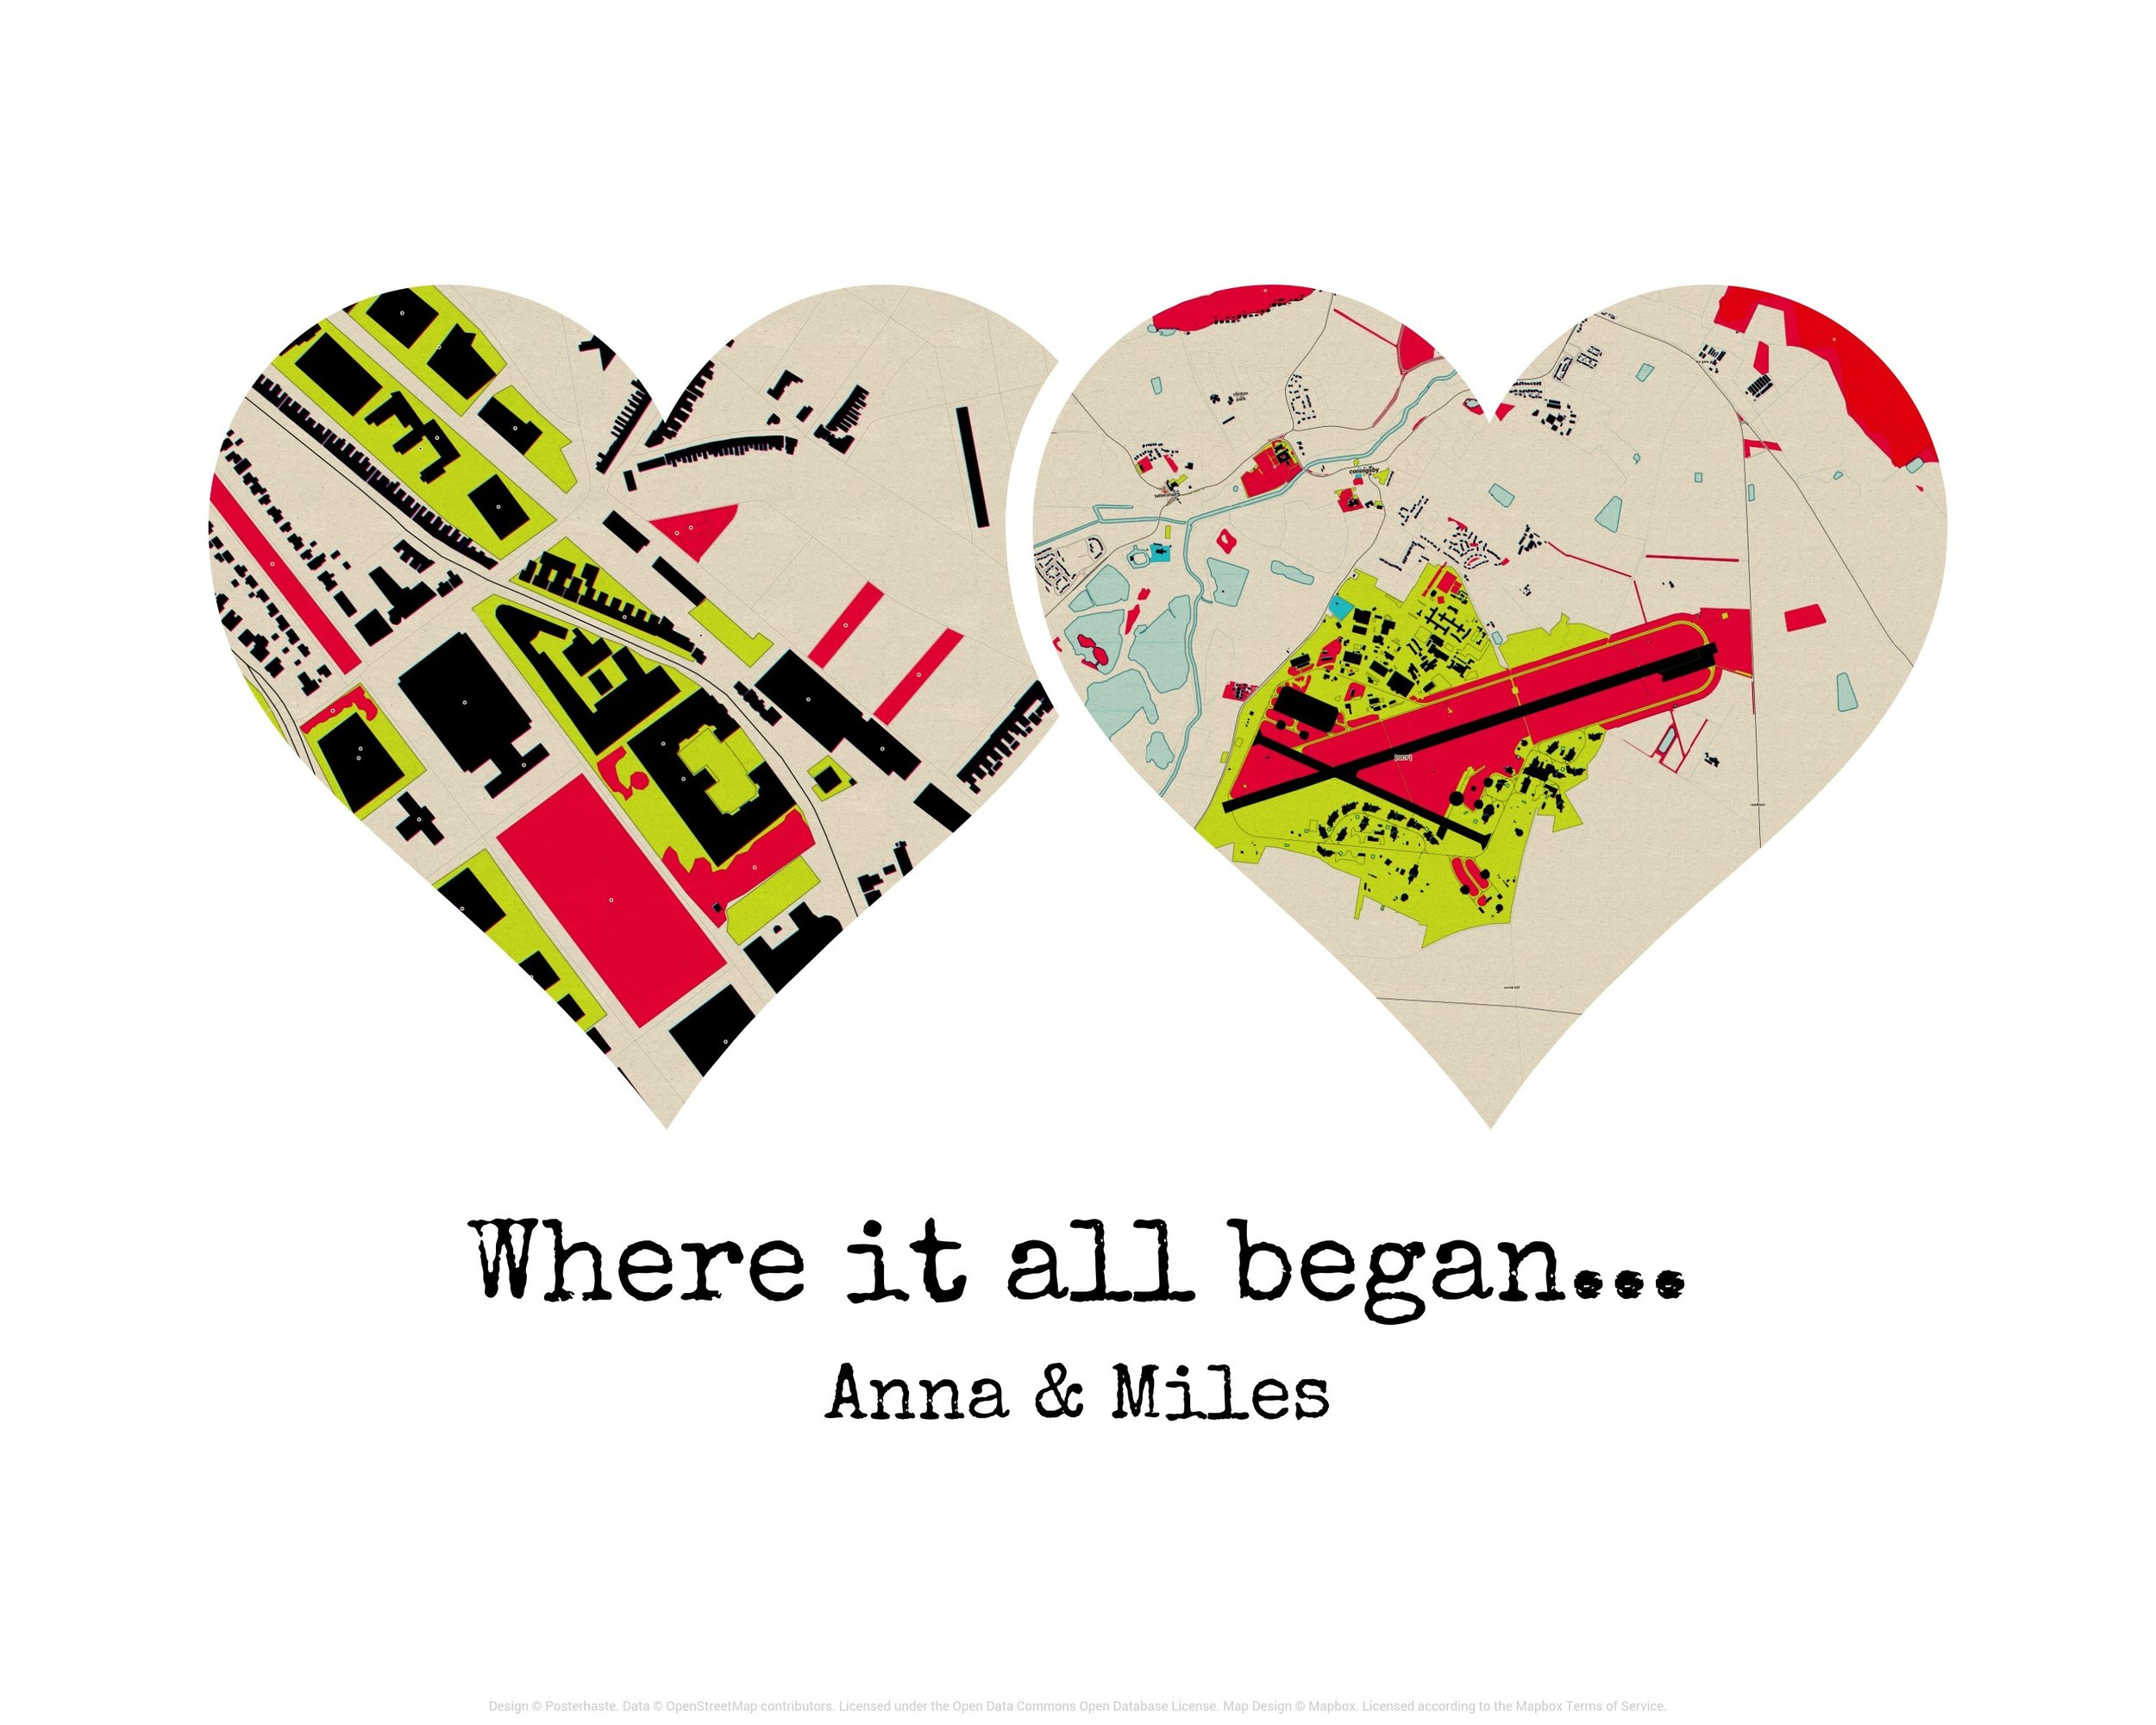 - Dual heart map print: Get creative and use this design to illustrate key moments in the couple's relationship - such as where they were living when they met, places they have lived and locations relevant to the big day. We also offer a heart map where you can focus on one location.